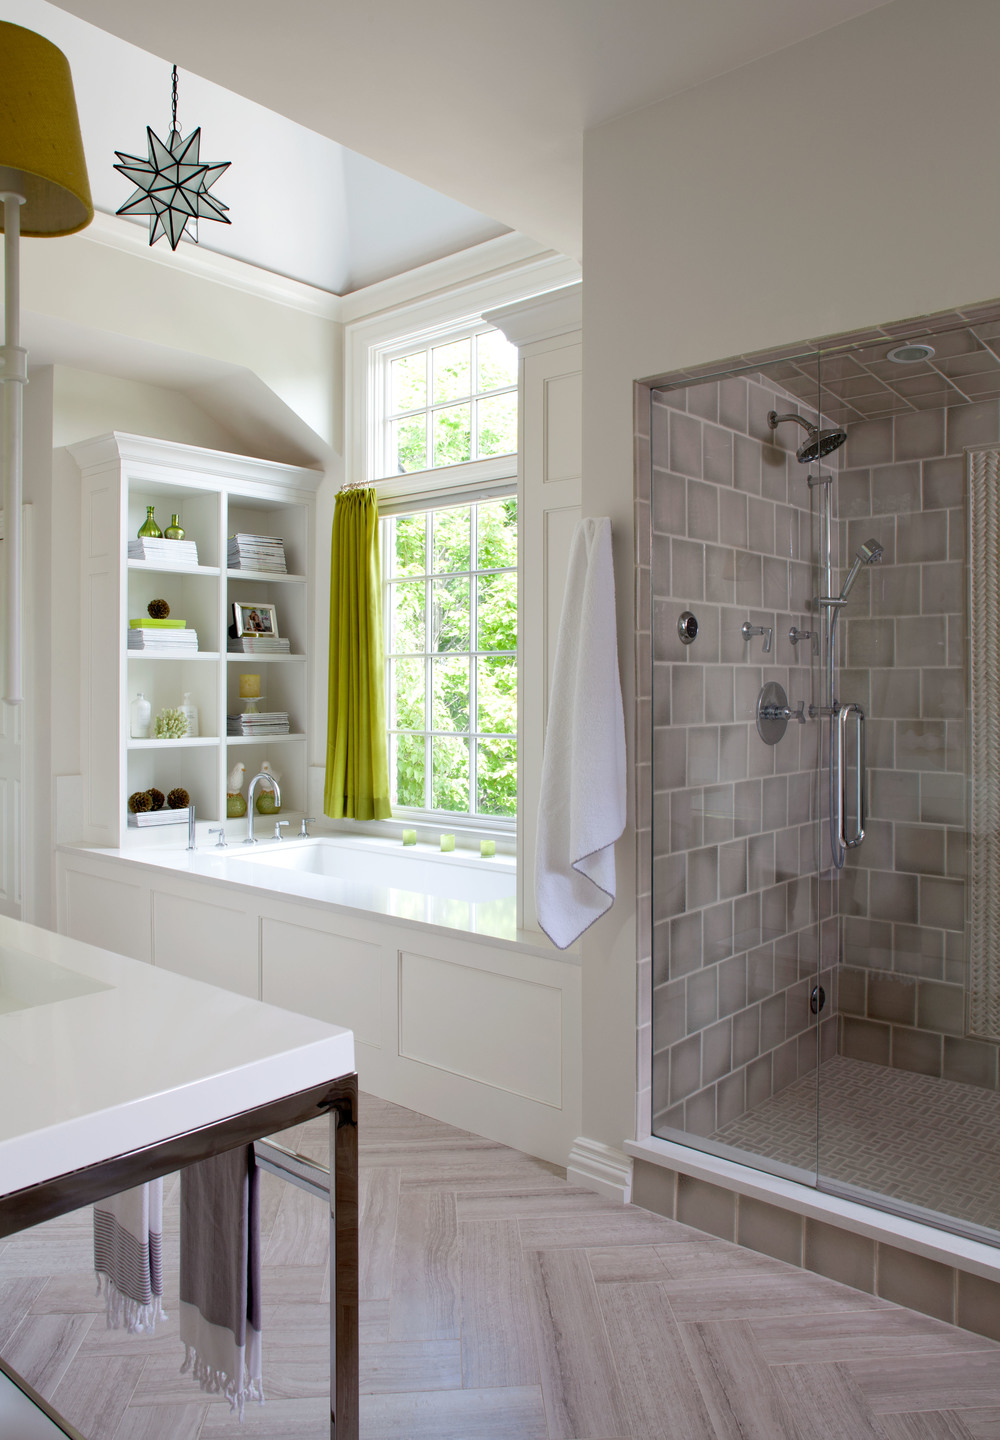 Transitional luxury custom home builds and remodels for High ceiling bathroom ideas